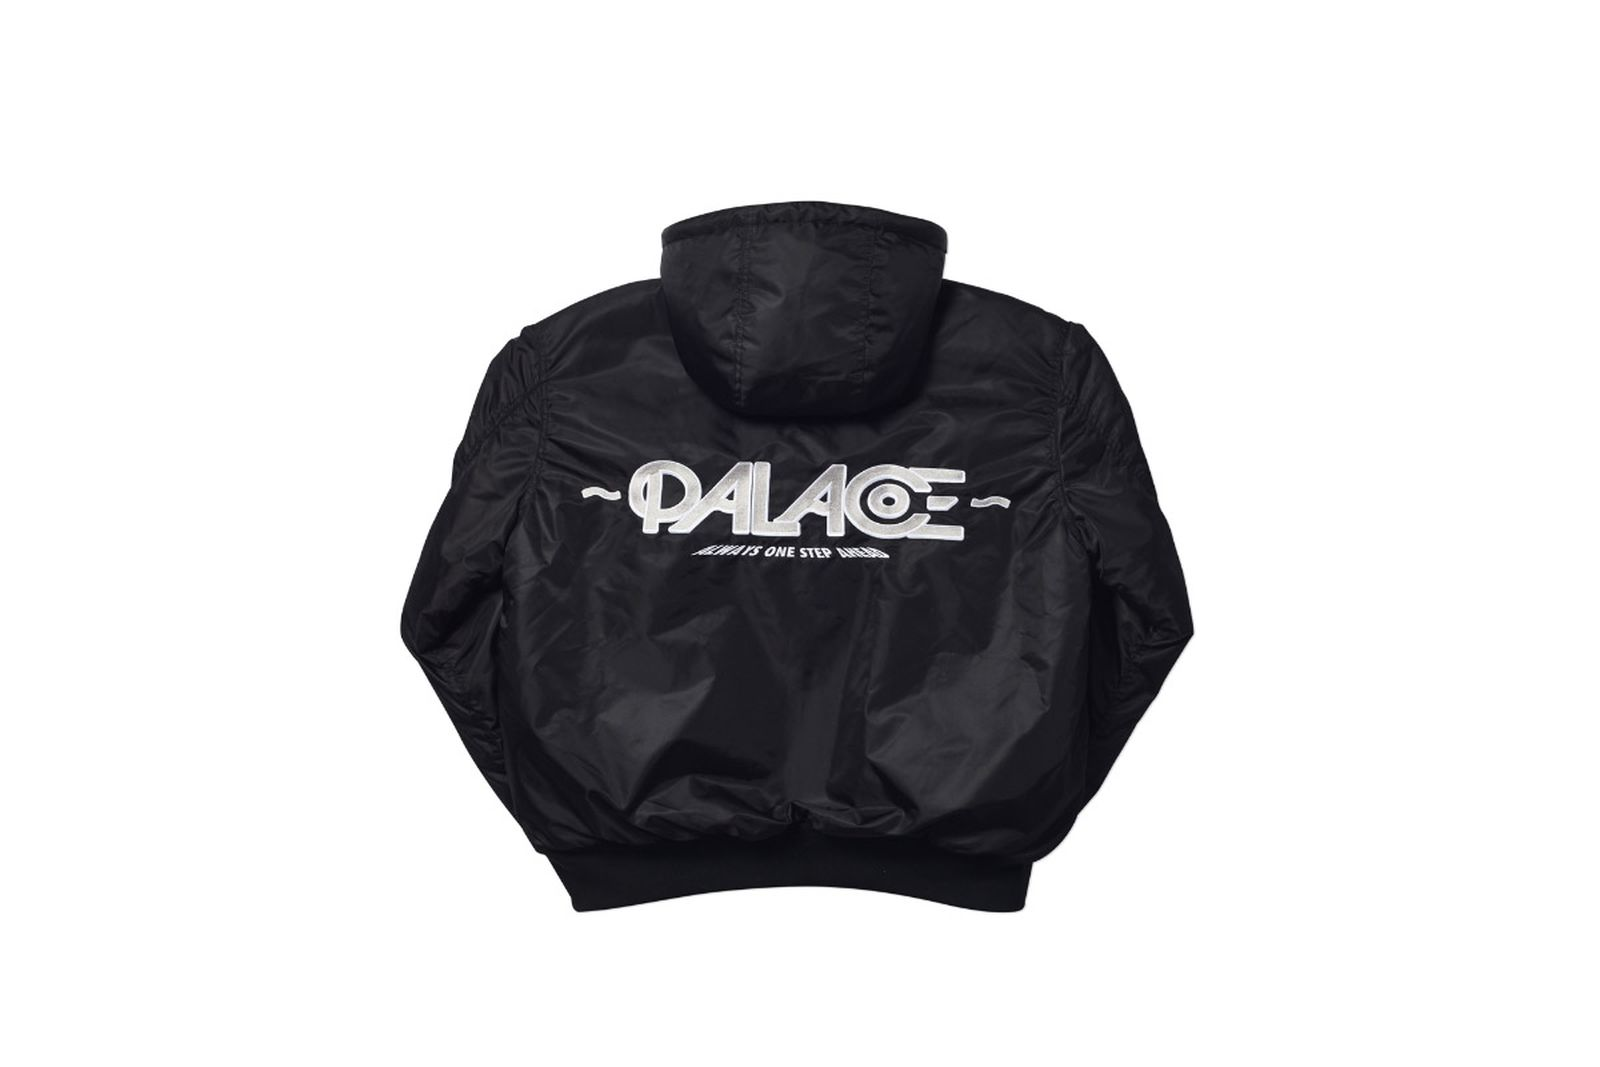 Palace Autumn 19 jkr hooded bomber blk4444 fw19